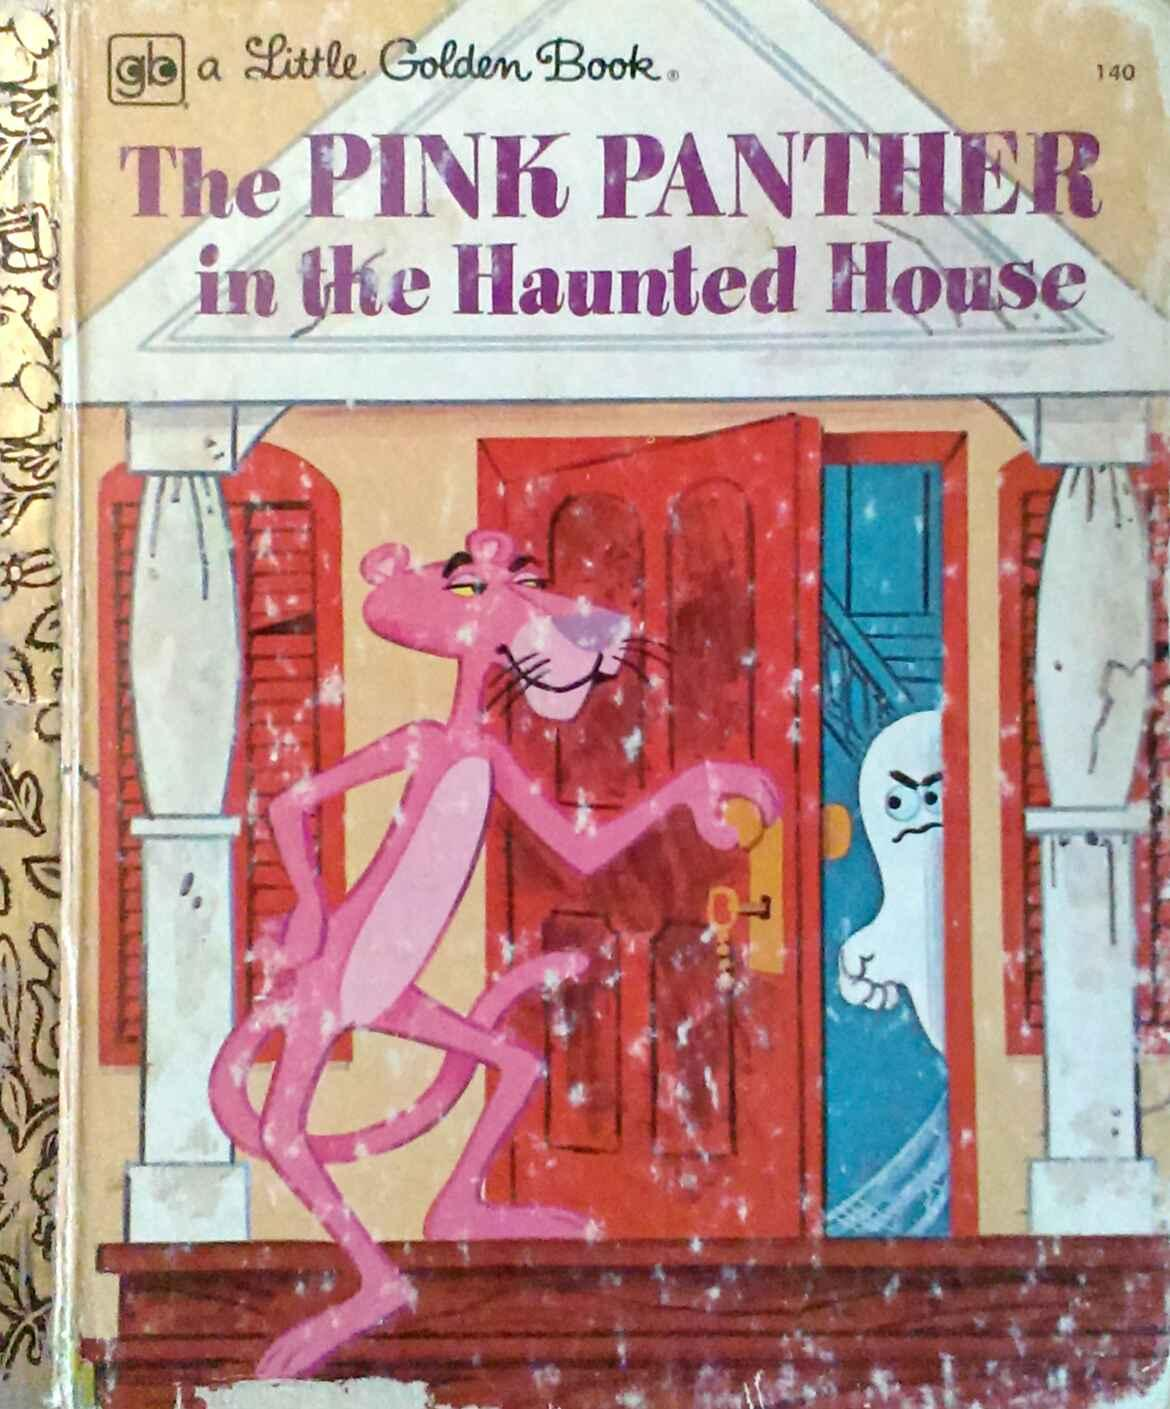 The Pink Panther in the Haunted House by Graham, Kennon: Western